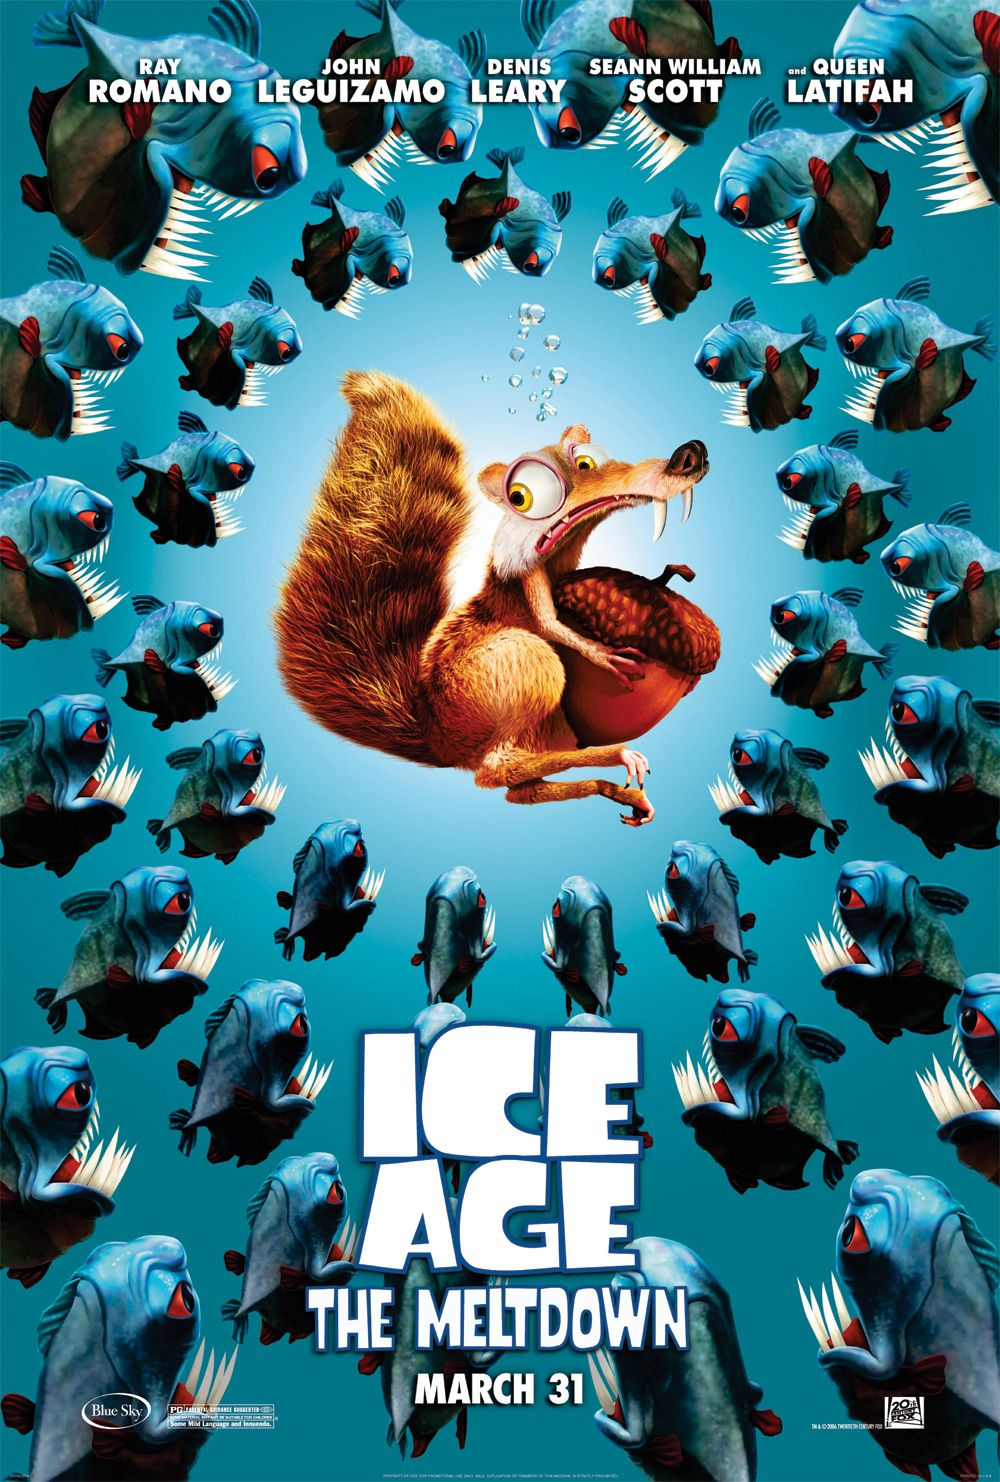 Ice age 2 the meltdown game music leapfrog leapster 2 games